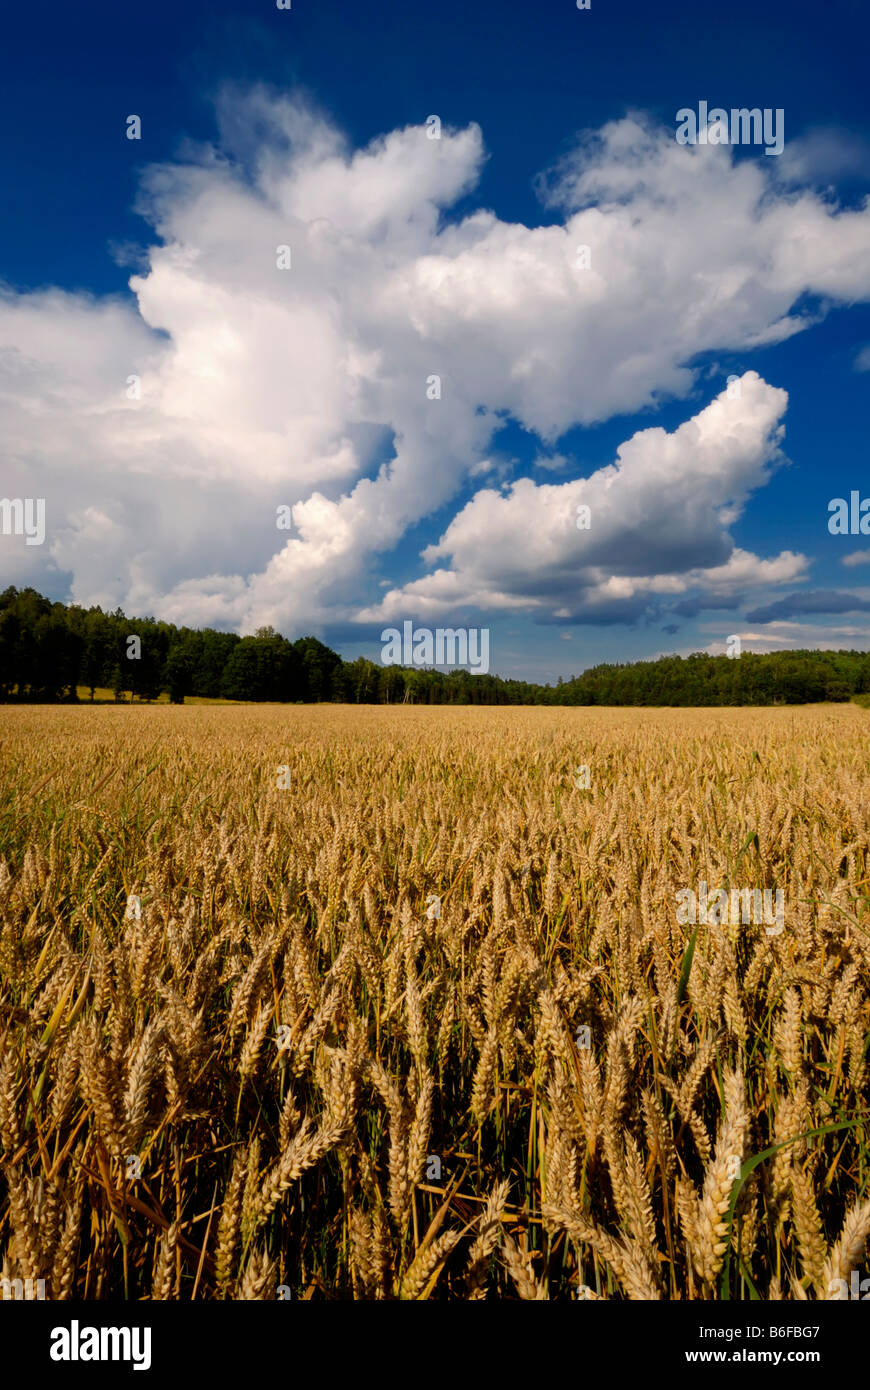 Wheat field with large cumulus cloud, Sweden, Scandinavia, Europe - Stock Image